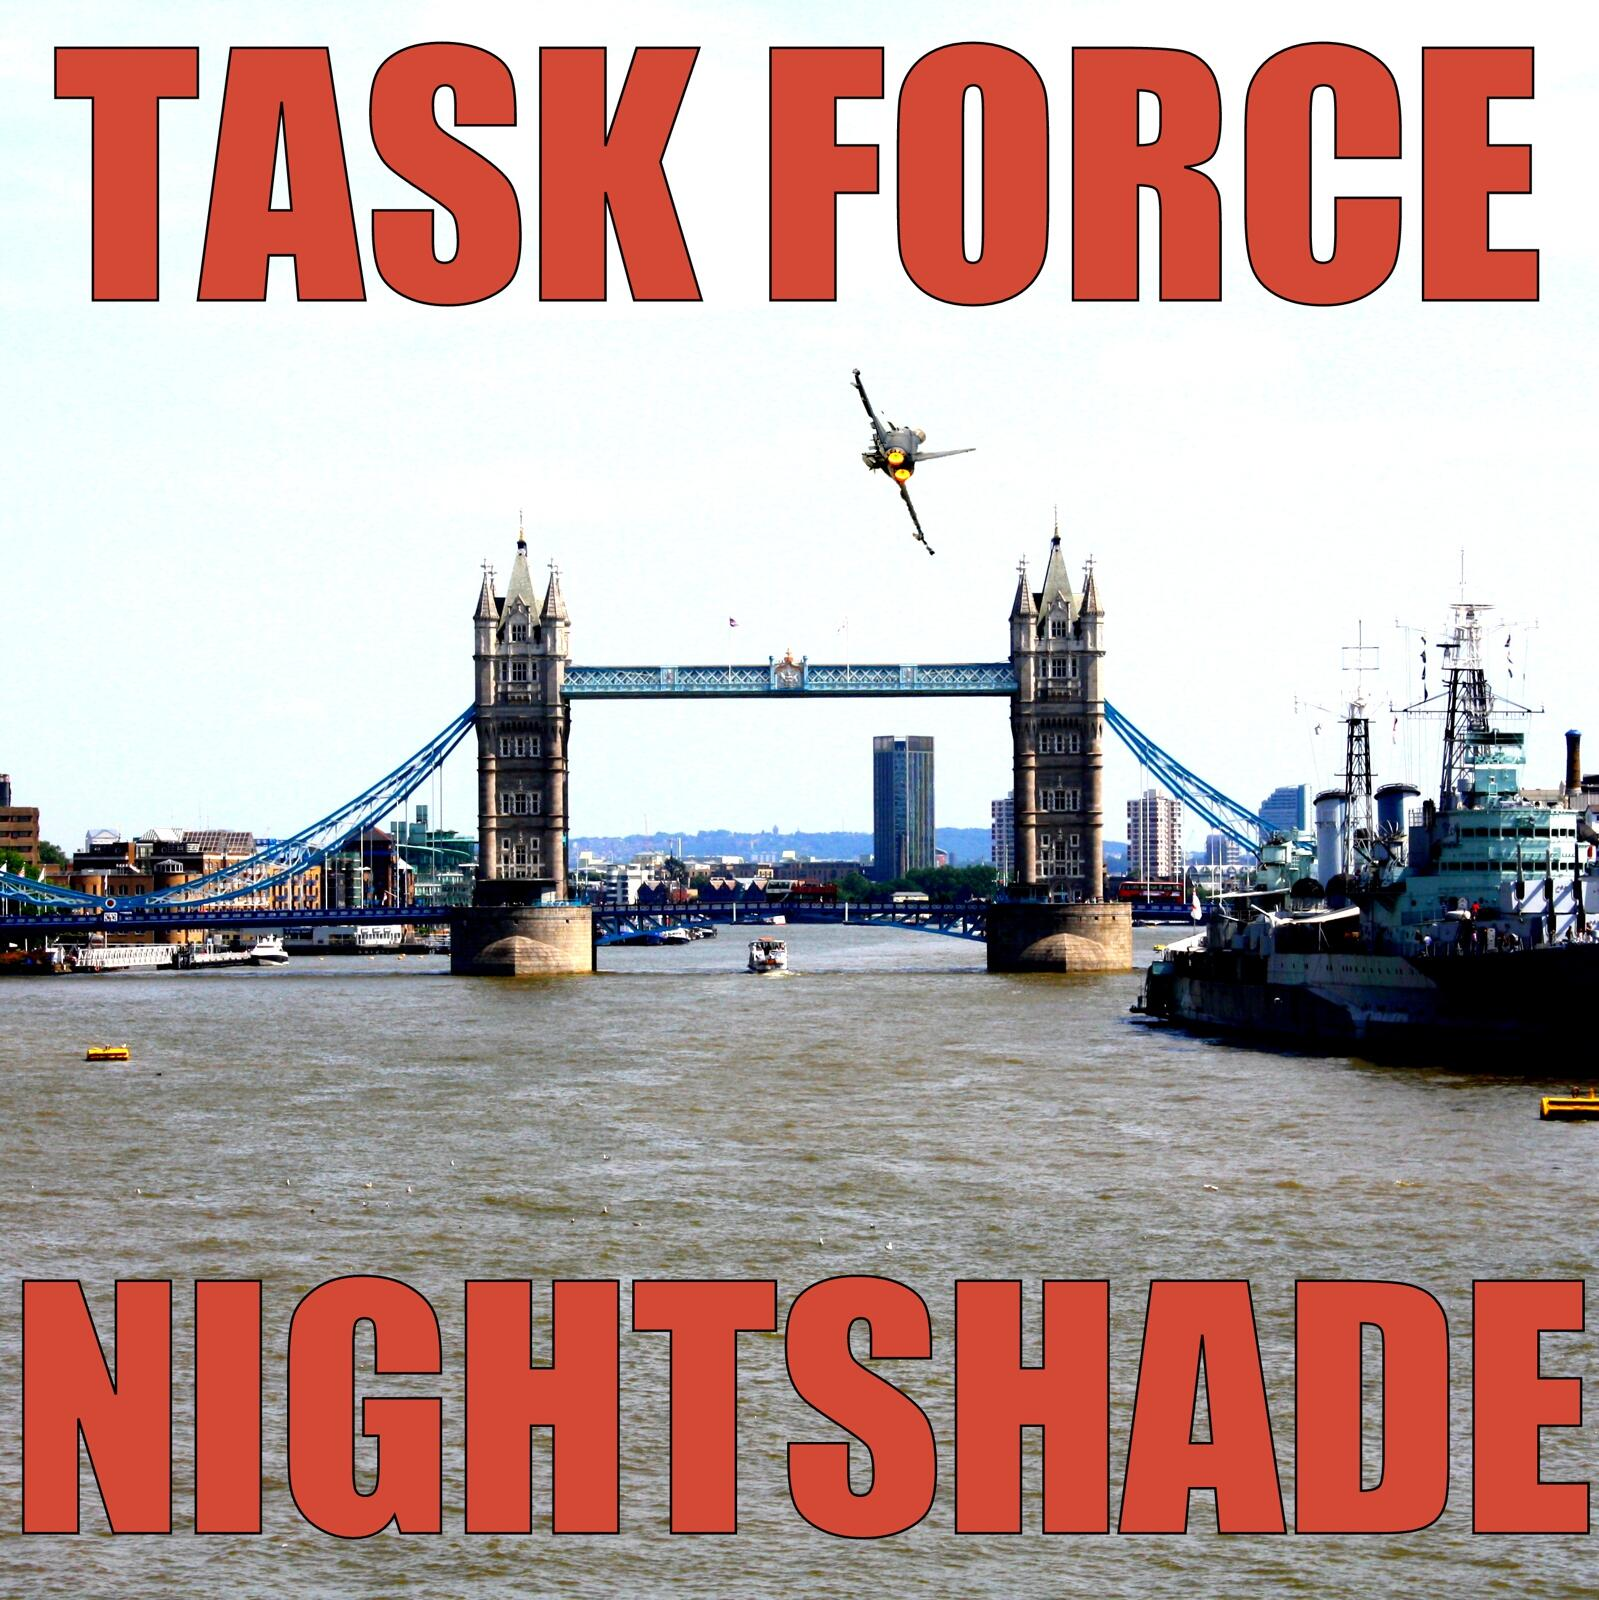 About Task Force X